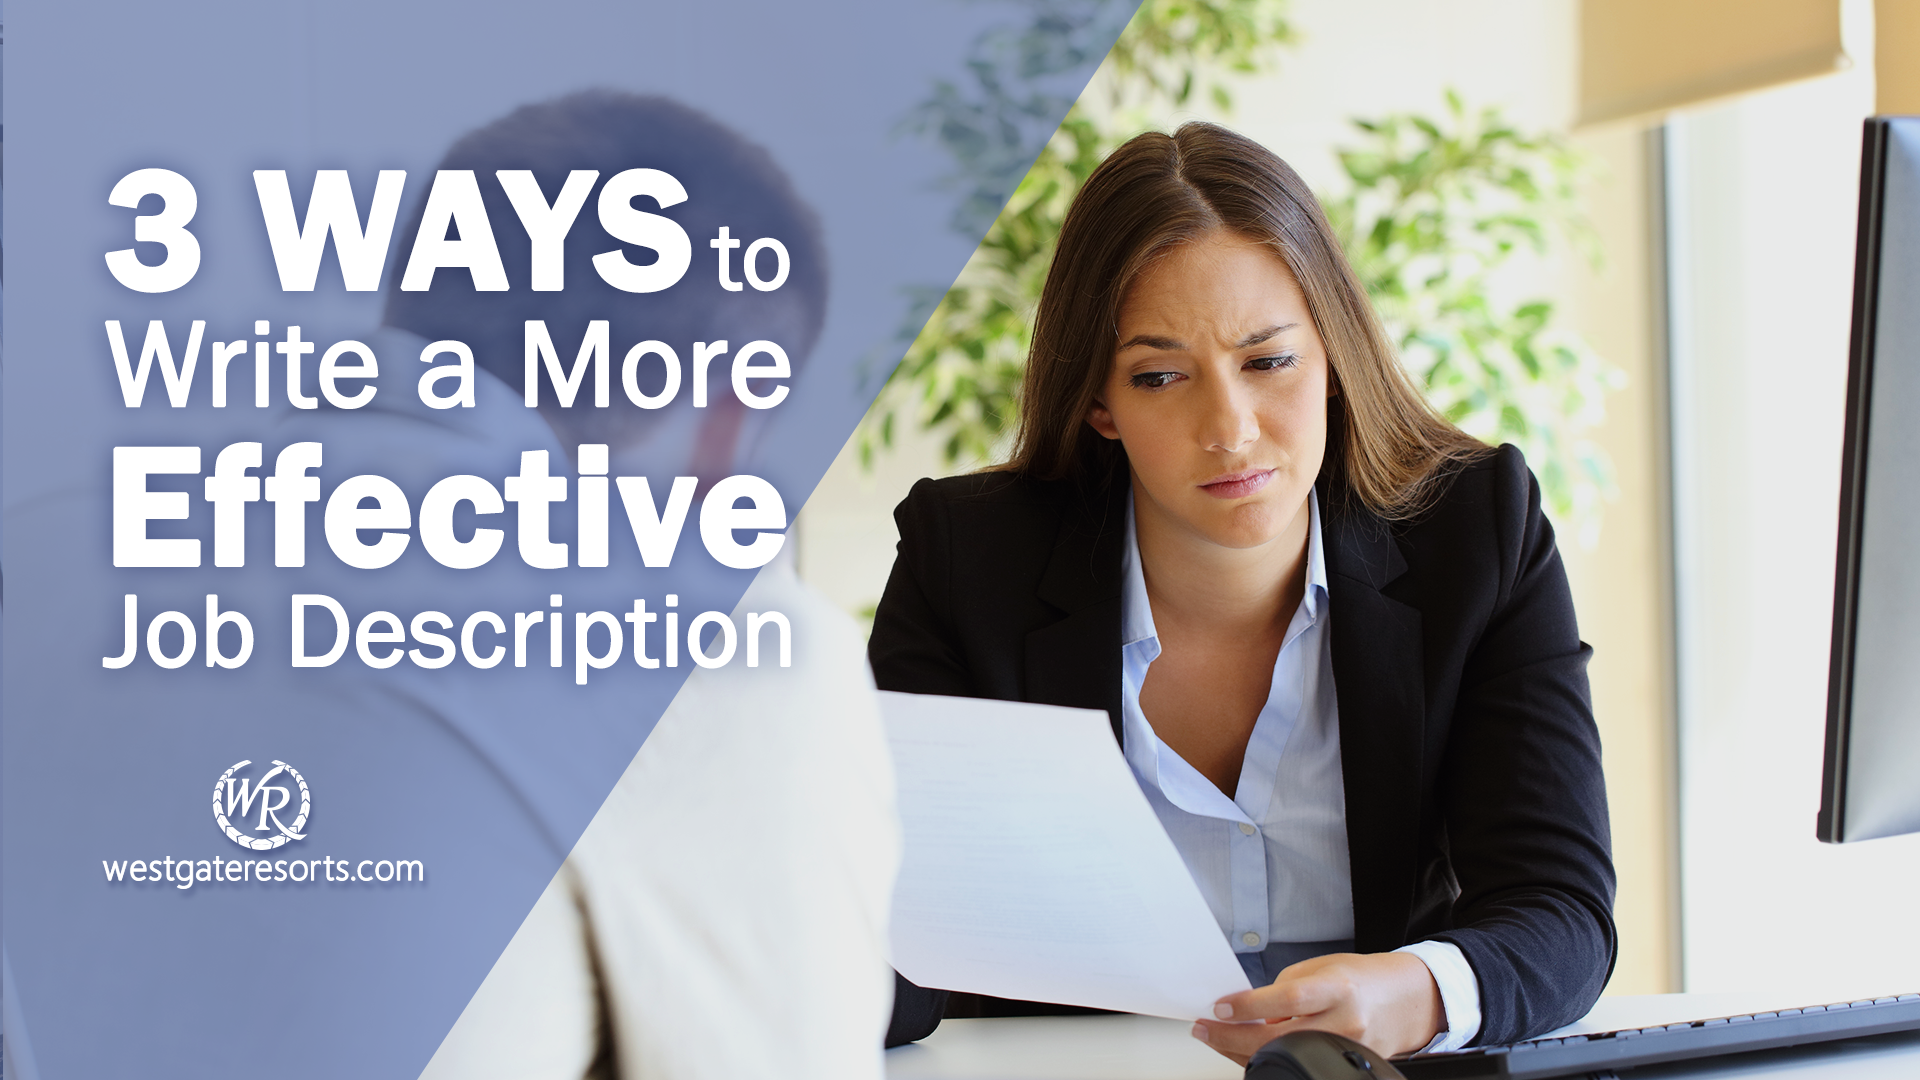 3 Ways to Write a More Effective Job Description | Job Descriptions For Hotels | Westgate Careers